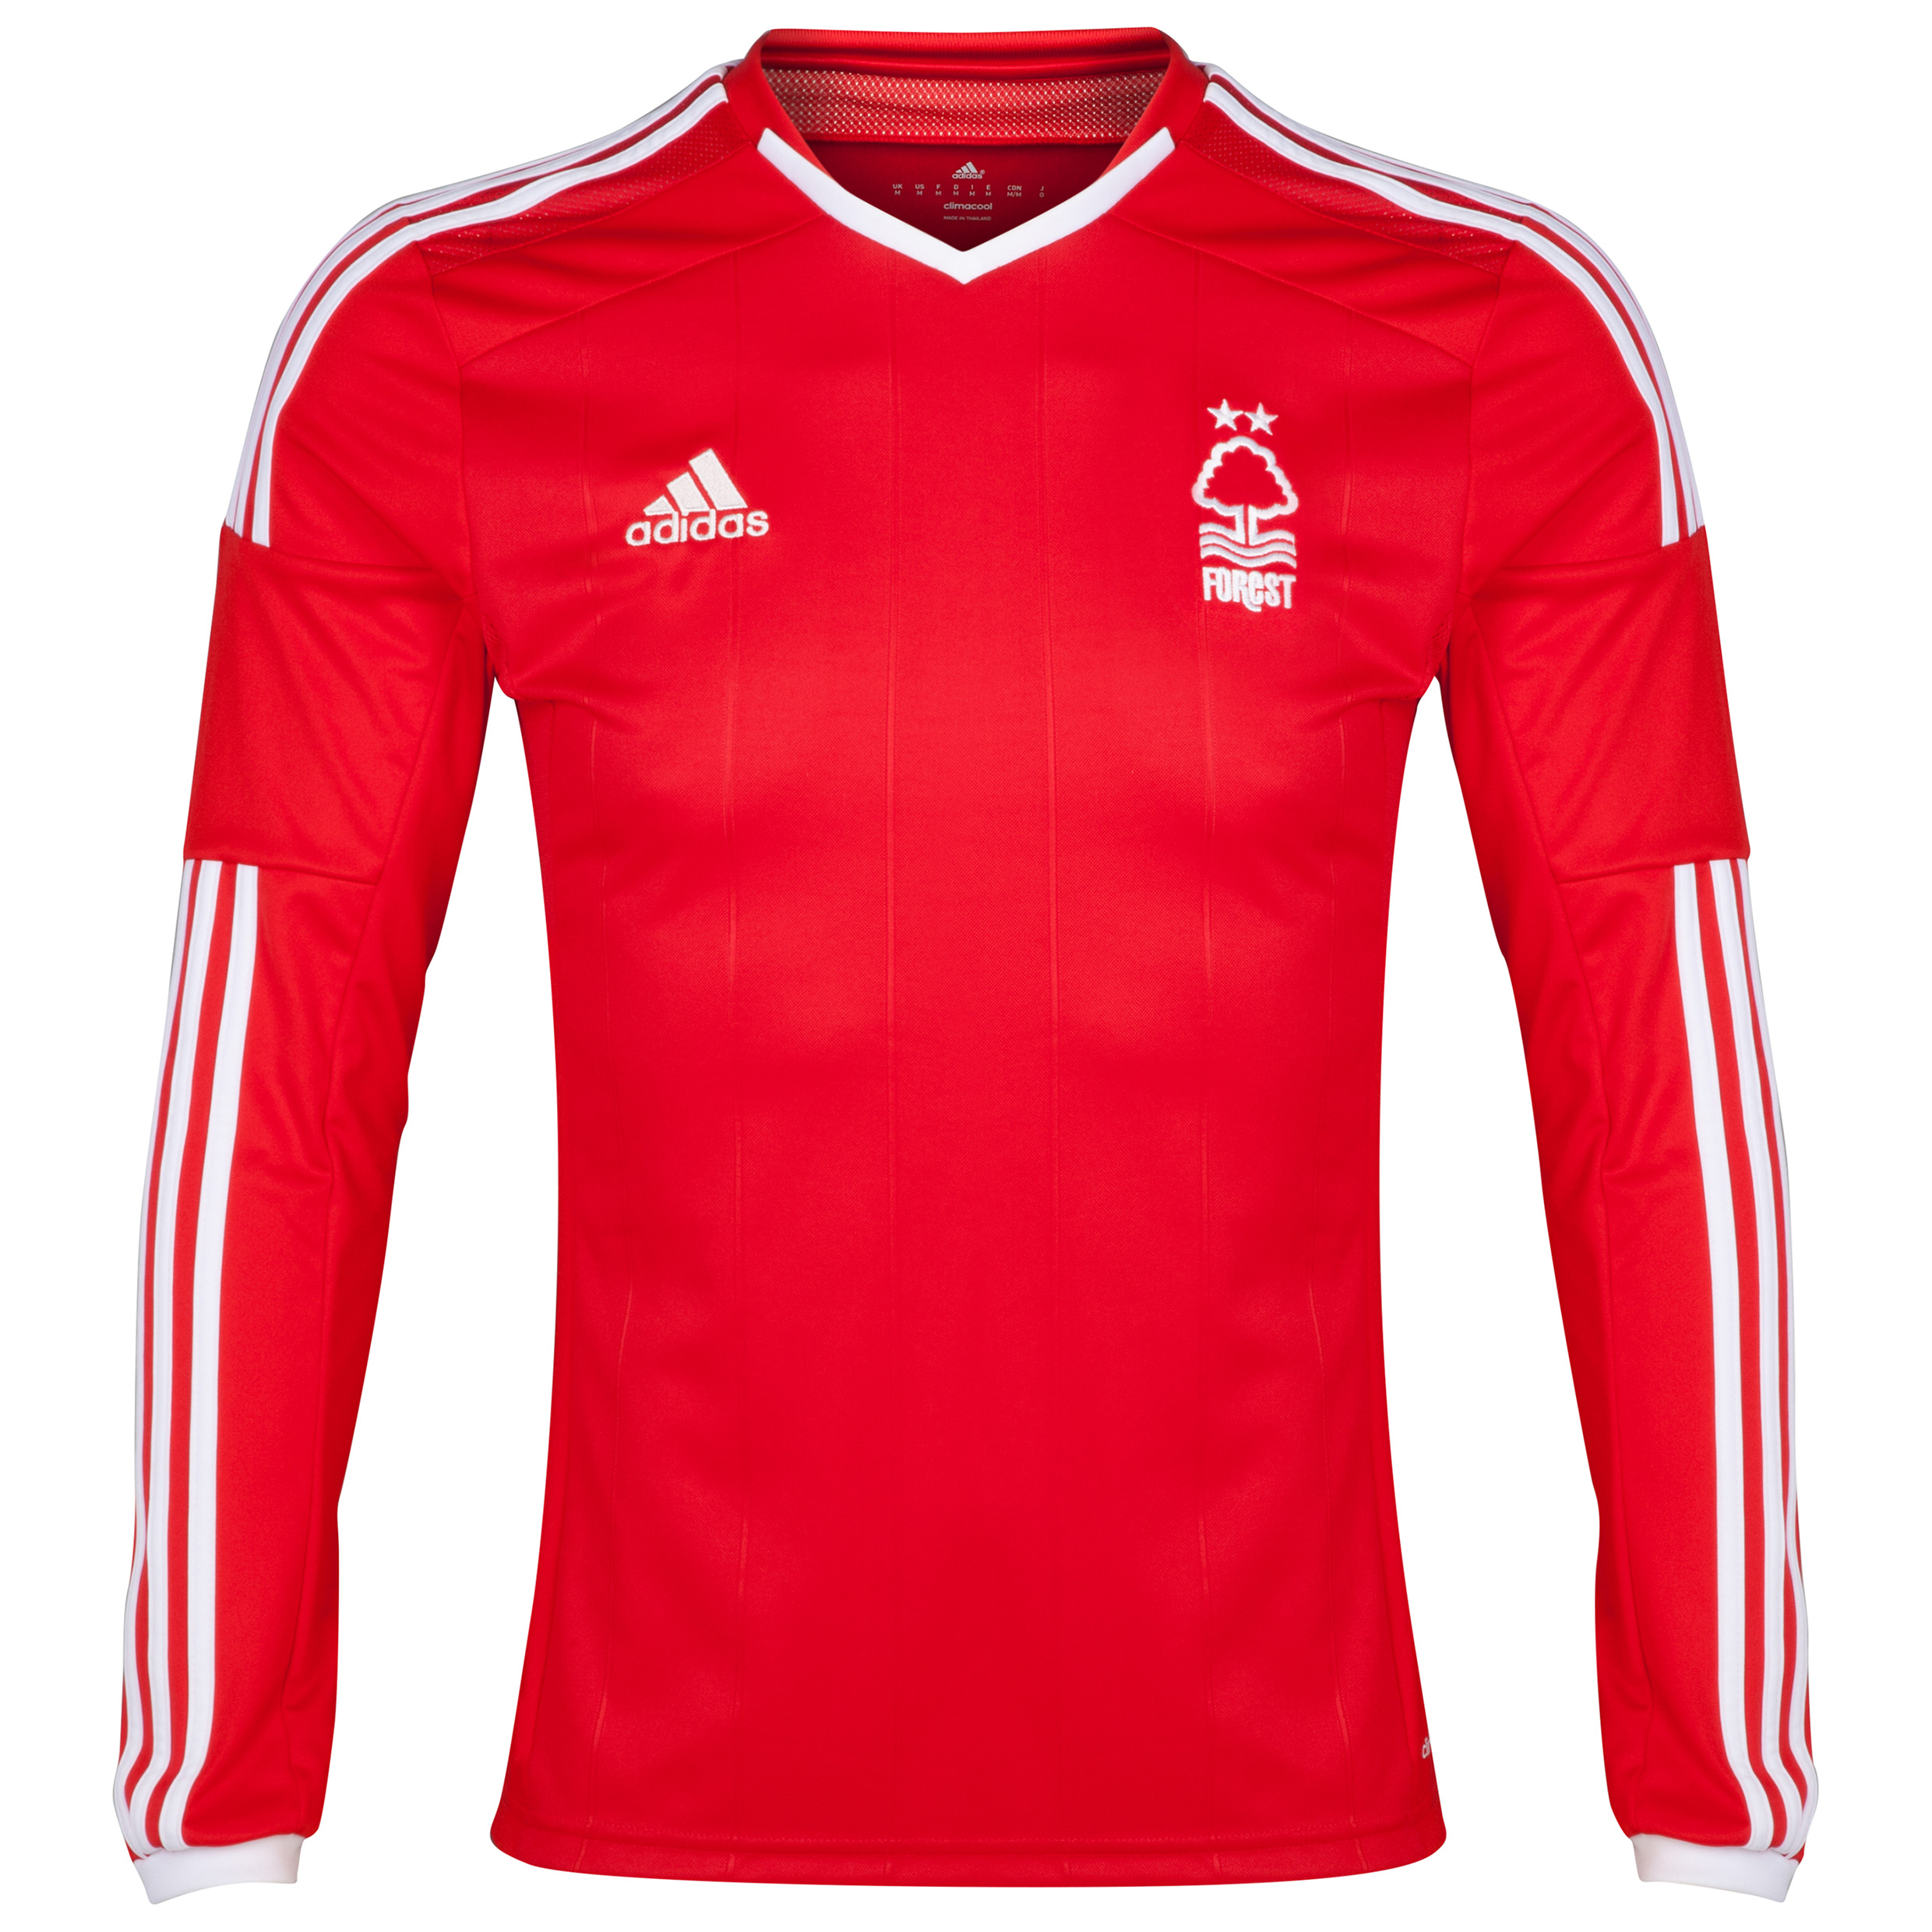 Nottingham Forest Home Shirt 2014/15 - Long Sleeved Red